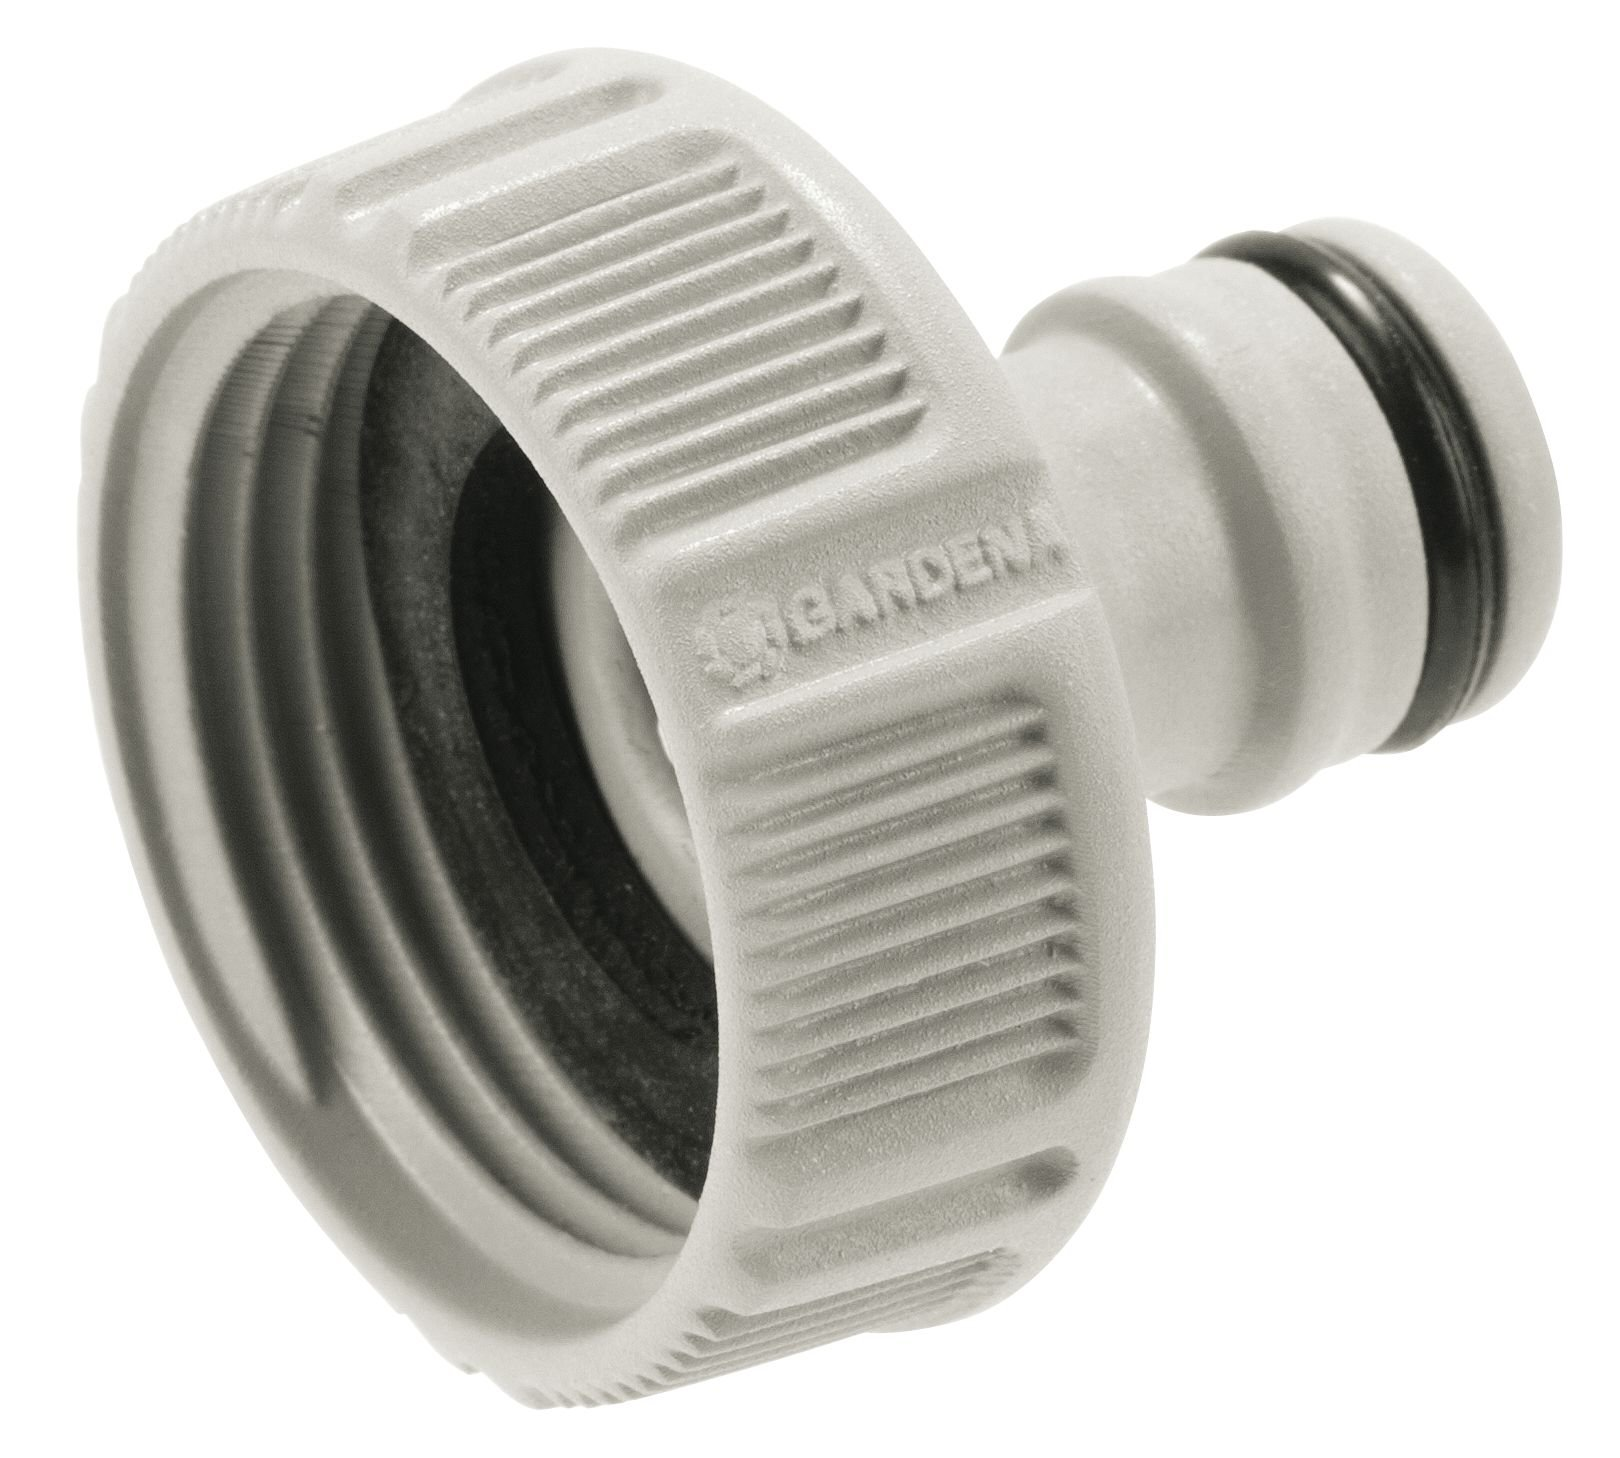 Gardena Tap Connector for Threaded Taps G 1''